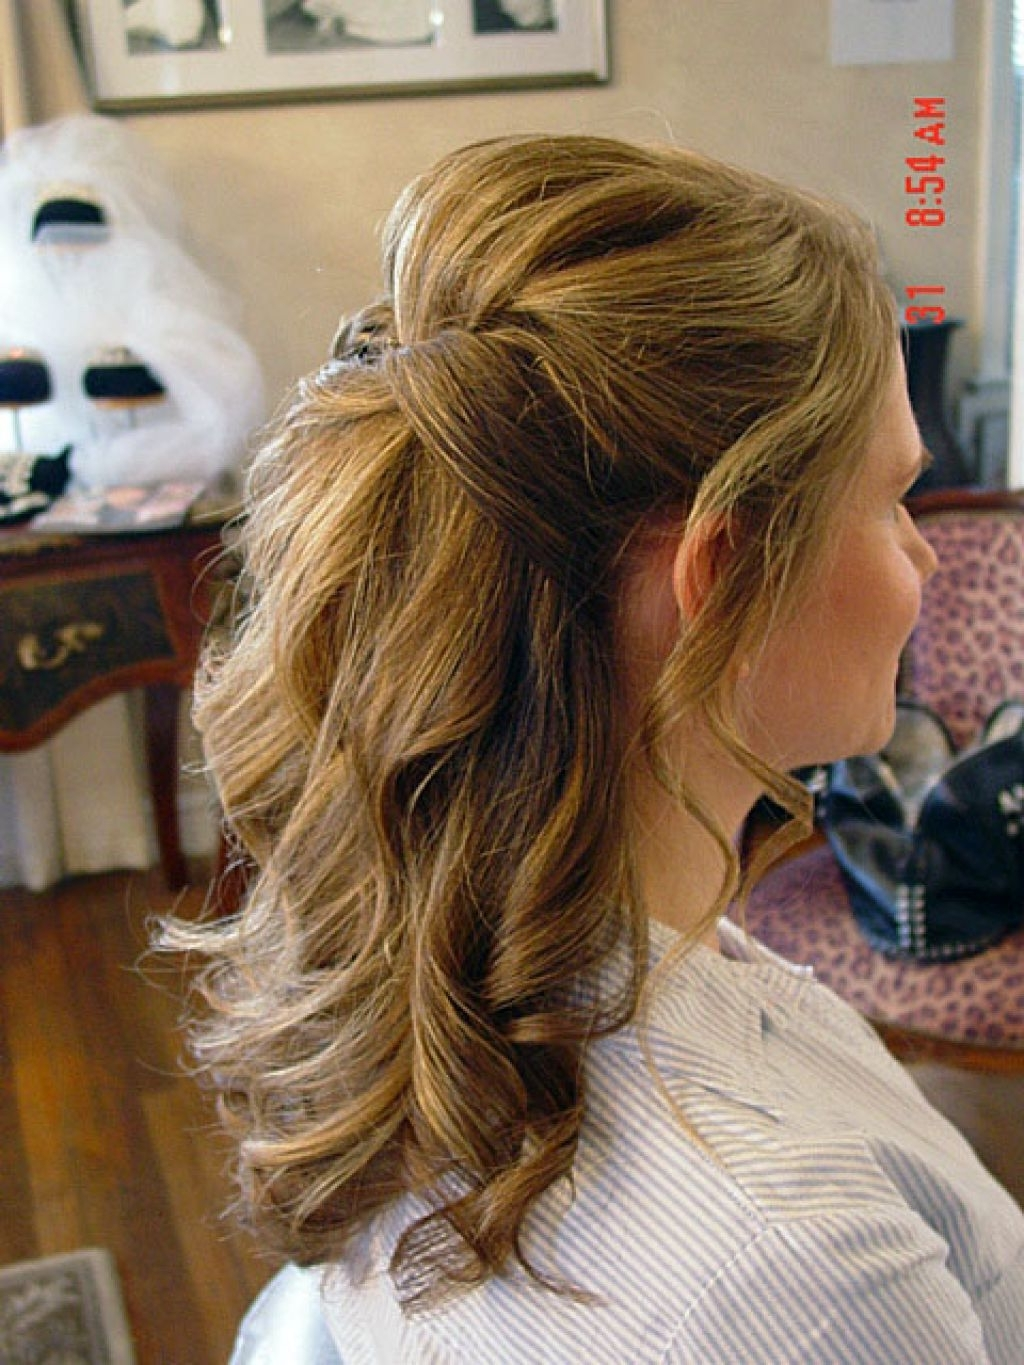 Half Up Half Down Wedding Hair Updo | Hairstyle | Pinterest With Regard To Half Hair Updos For Medium Length Hair (View 10 of 15)